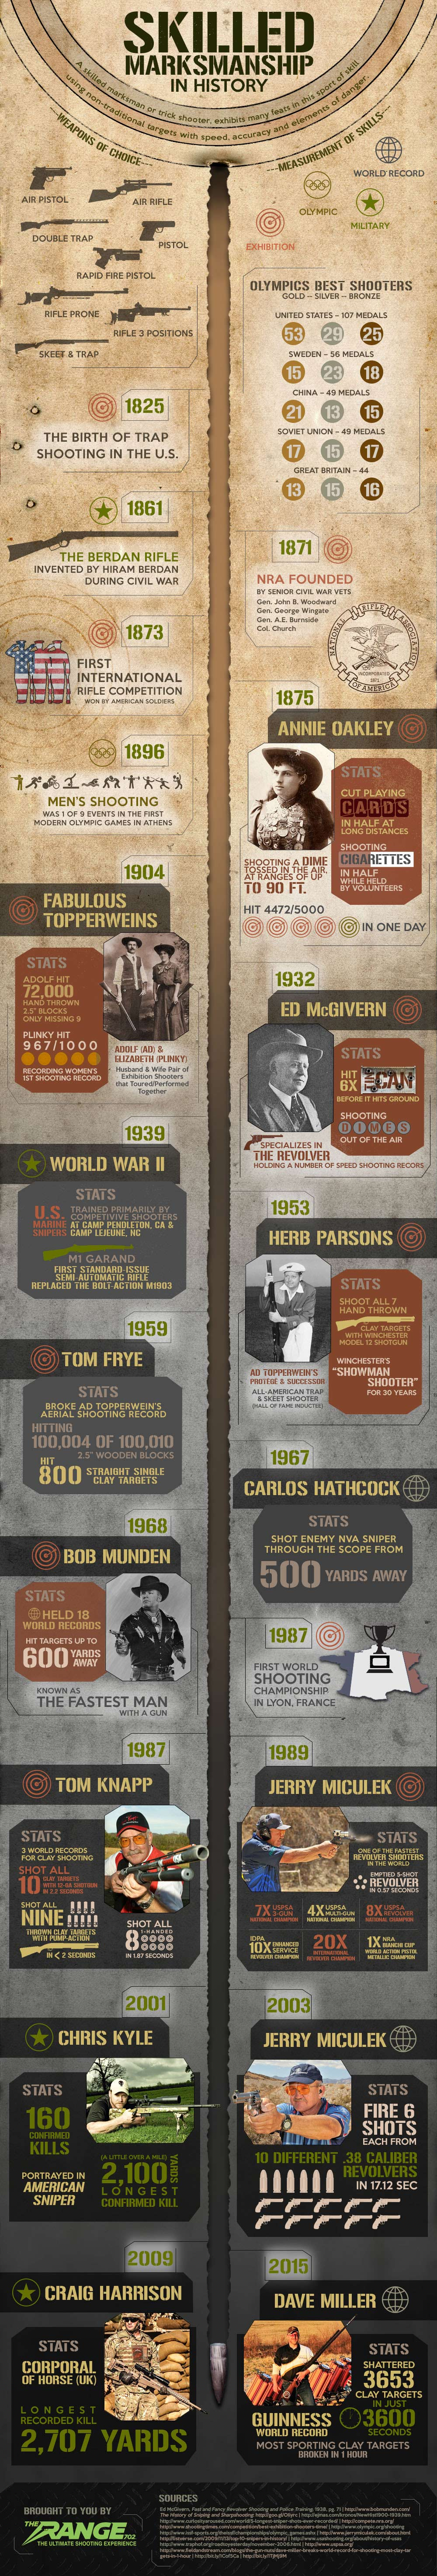 History of Marksmanship Infographic - The Range 702